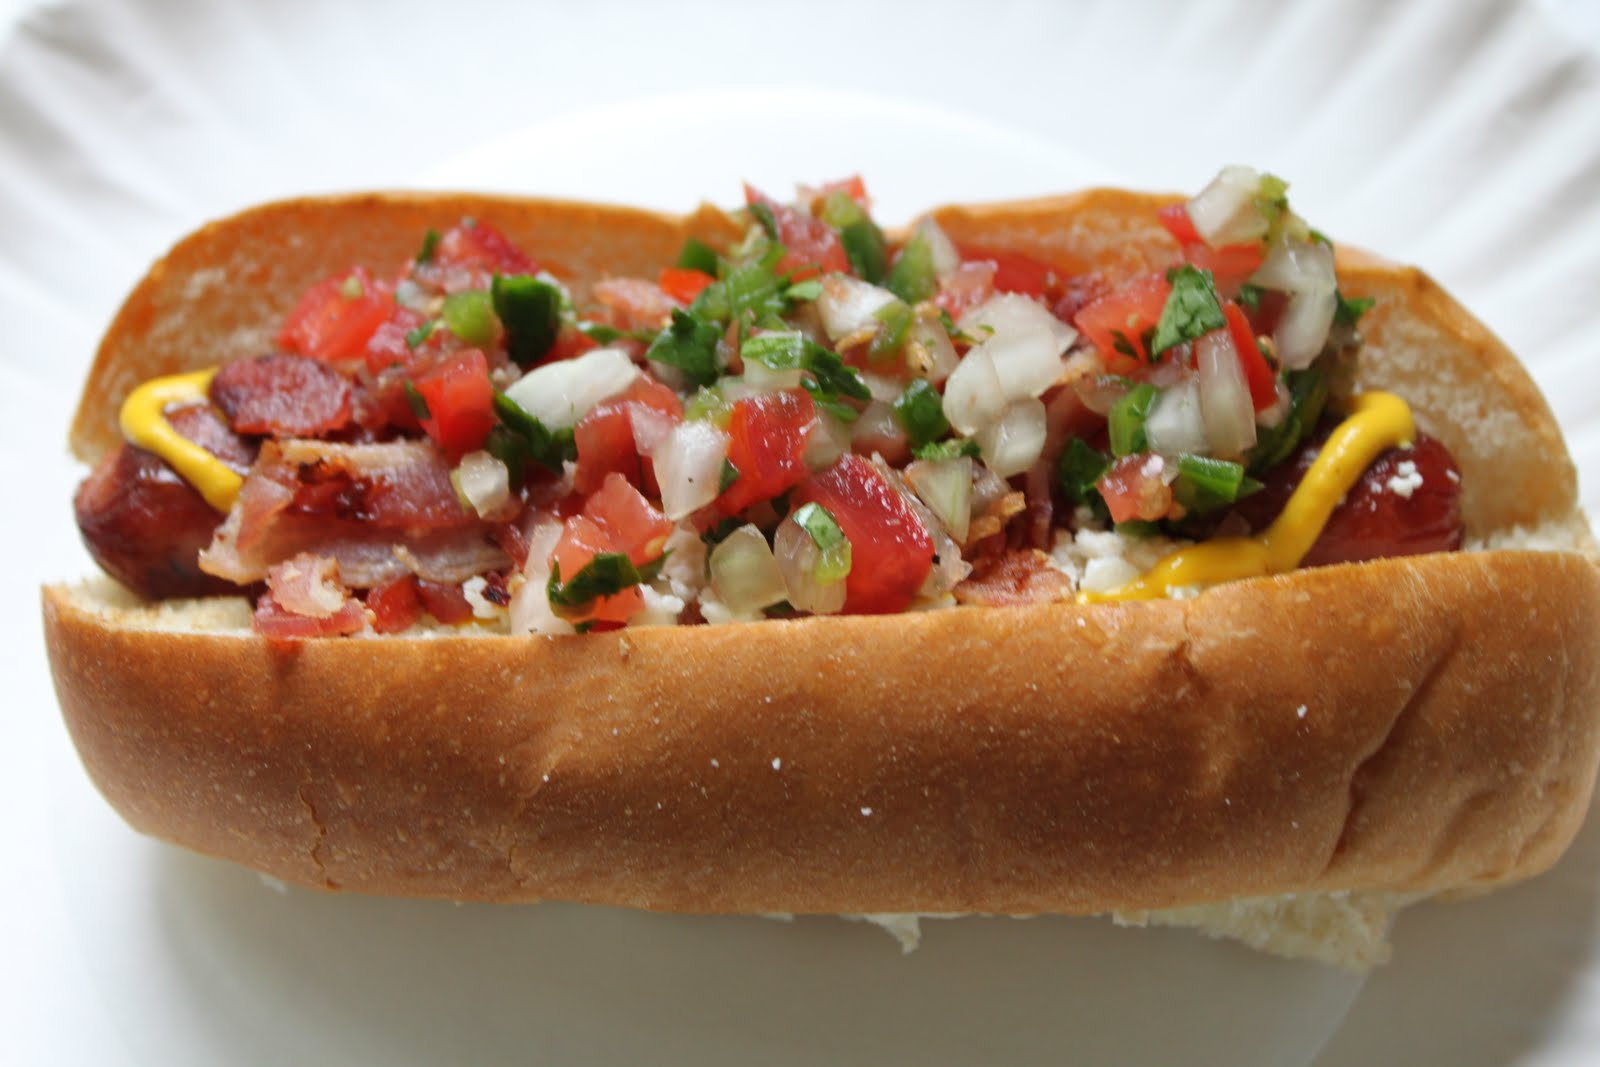 http://www.jamesaltucher.com/wp-content/uploads/2013/03/HOT-DOG.jpg